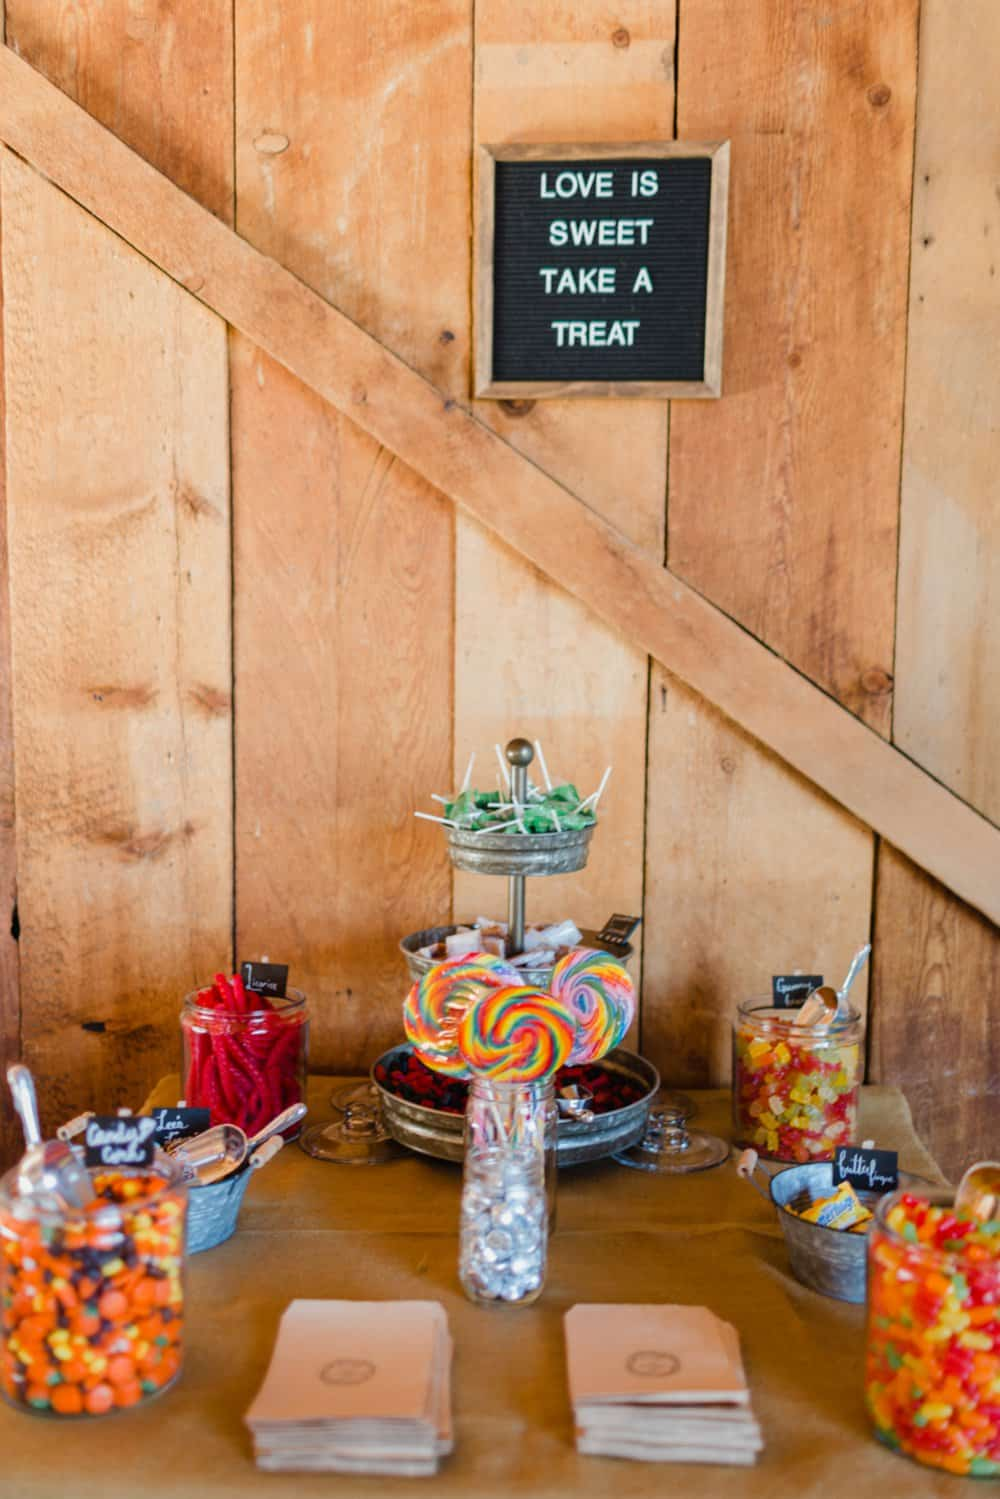 diy wedding decor, diy wedding favors, wedding candy table